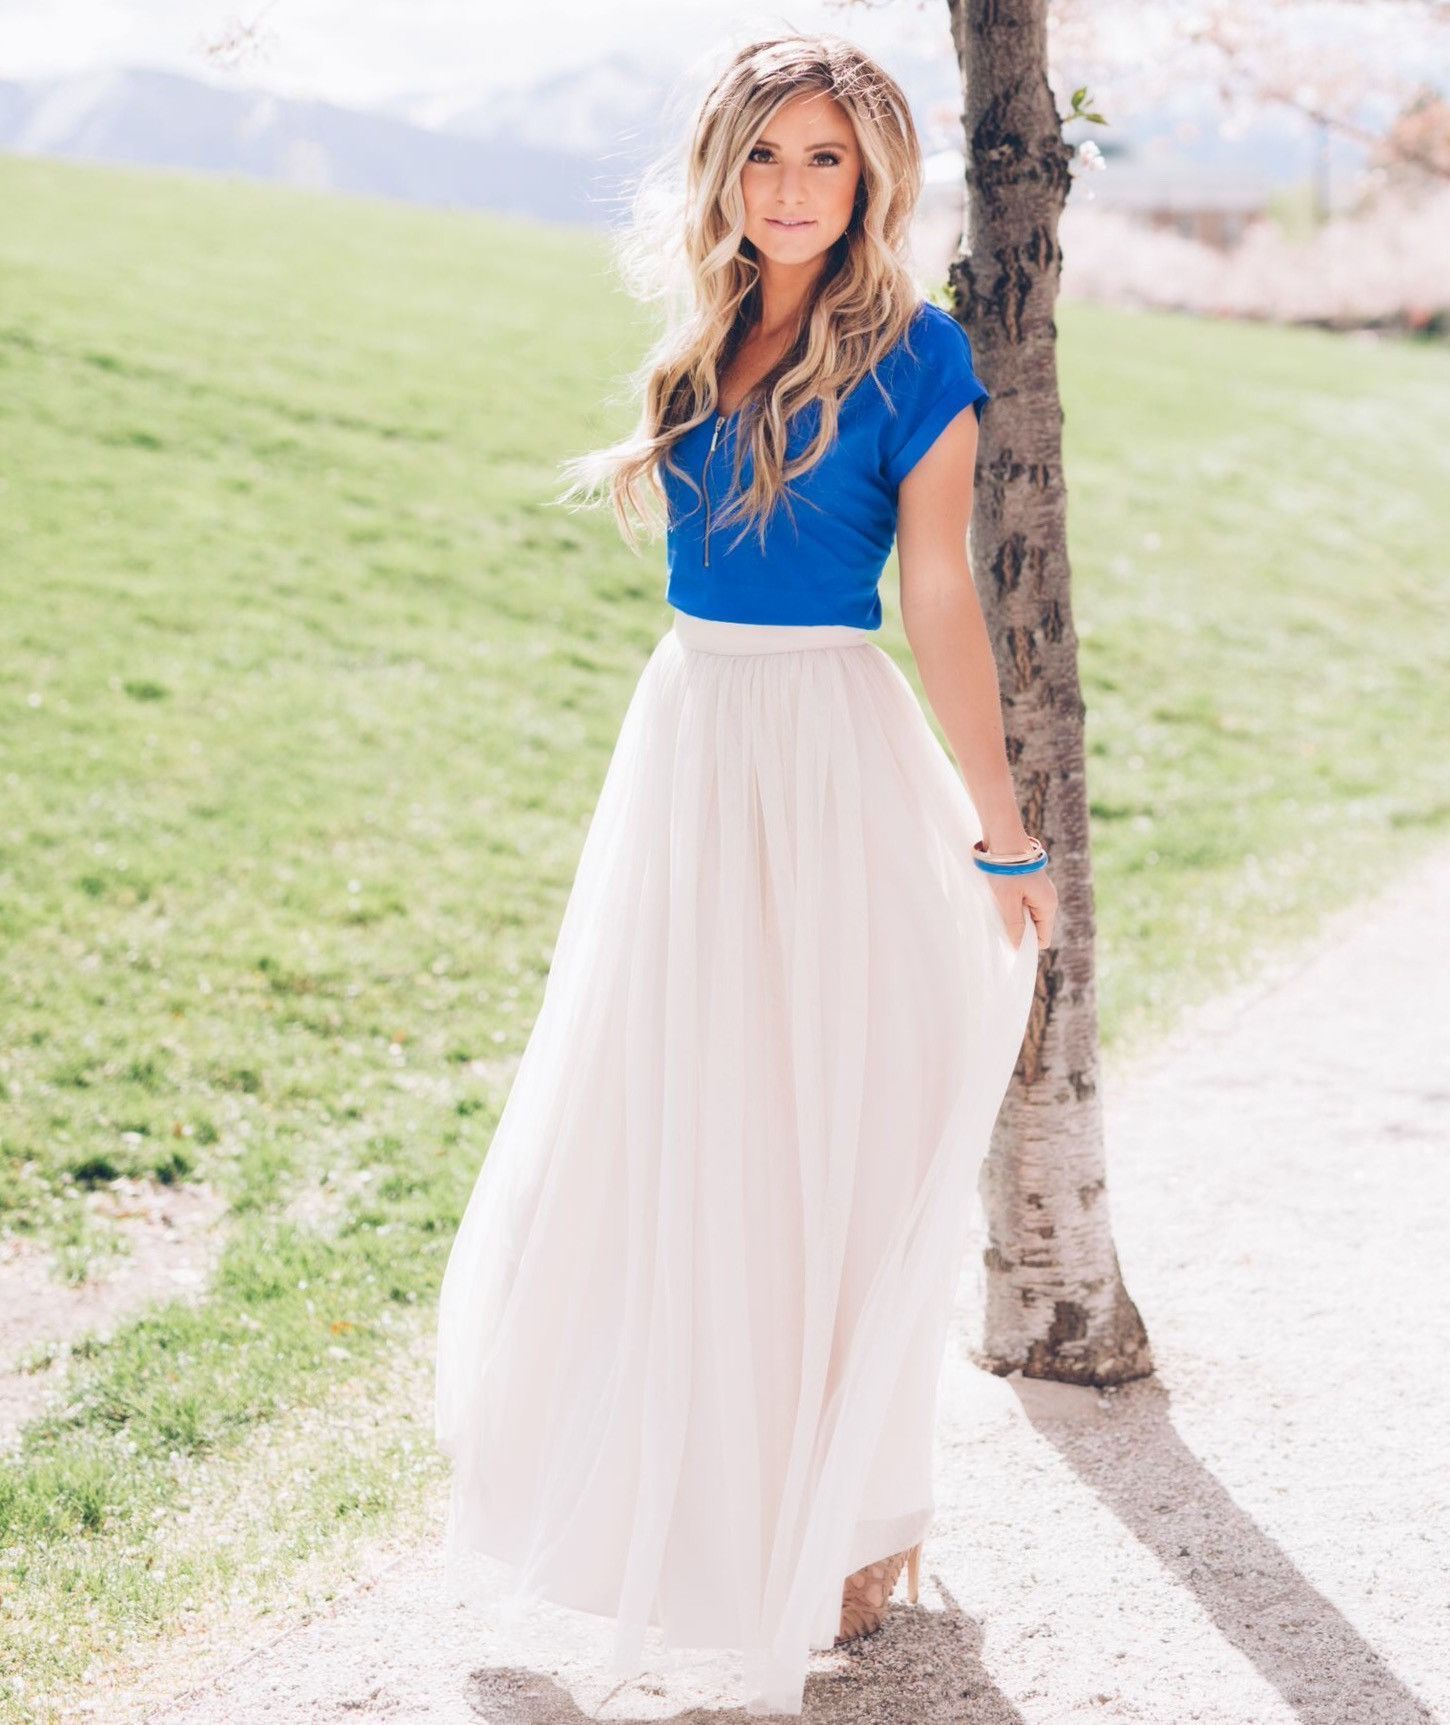 The Chloe Maxi | Tulle skirts, Sale items and Final sale